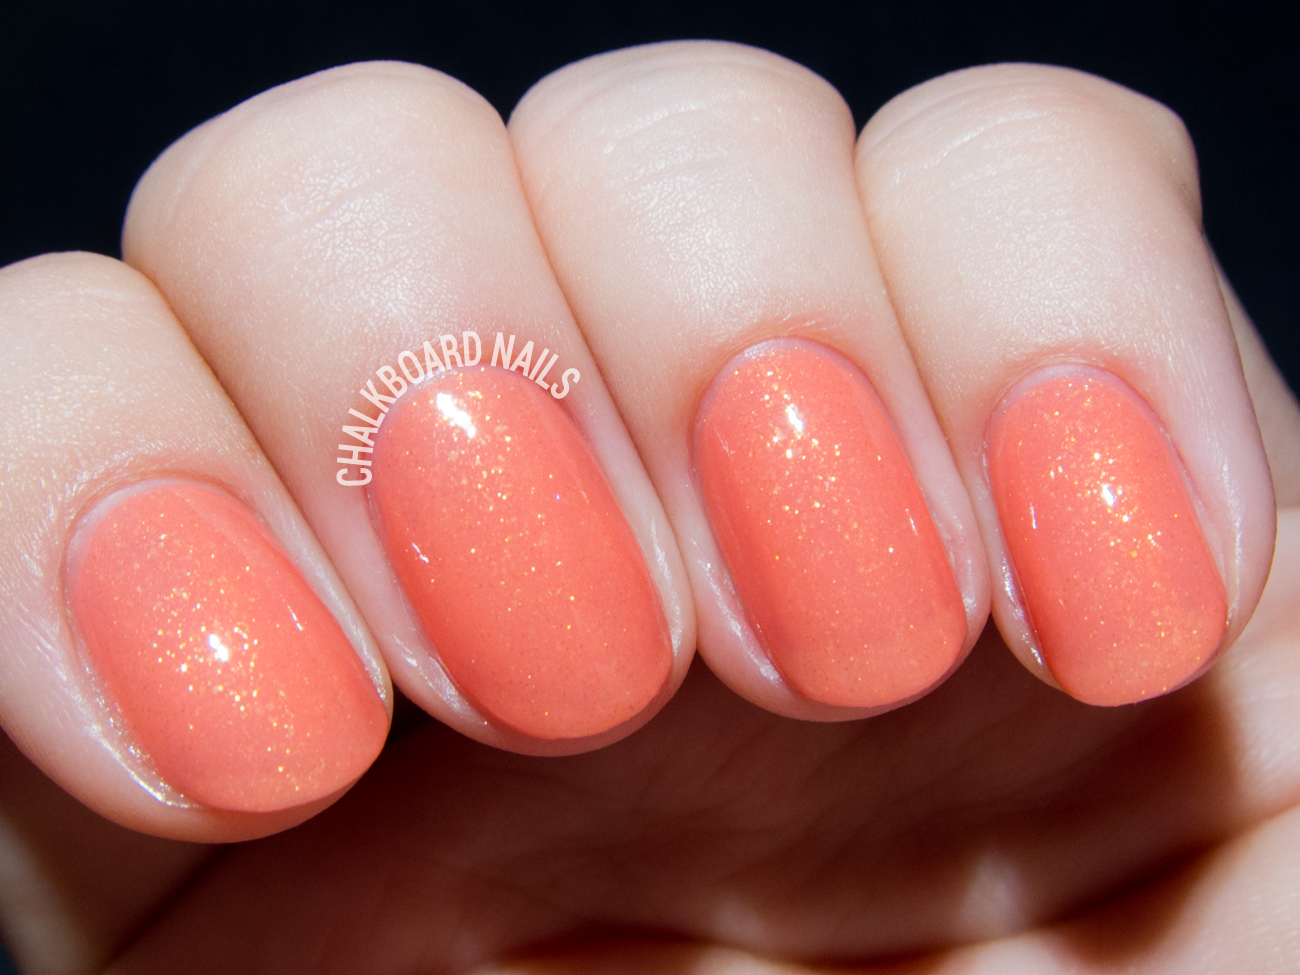 Serum No. 5 Coral-ectric via @chalkboardnails